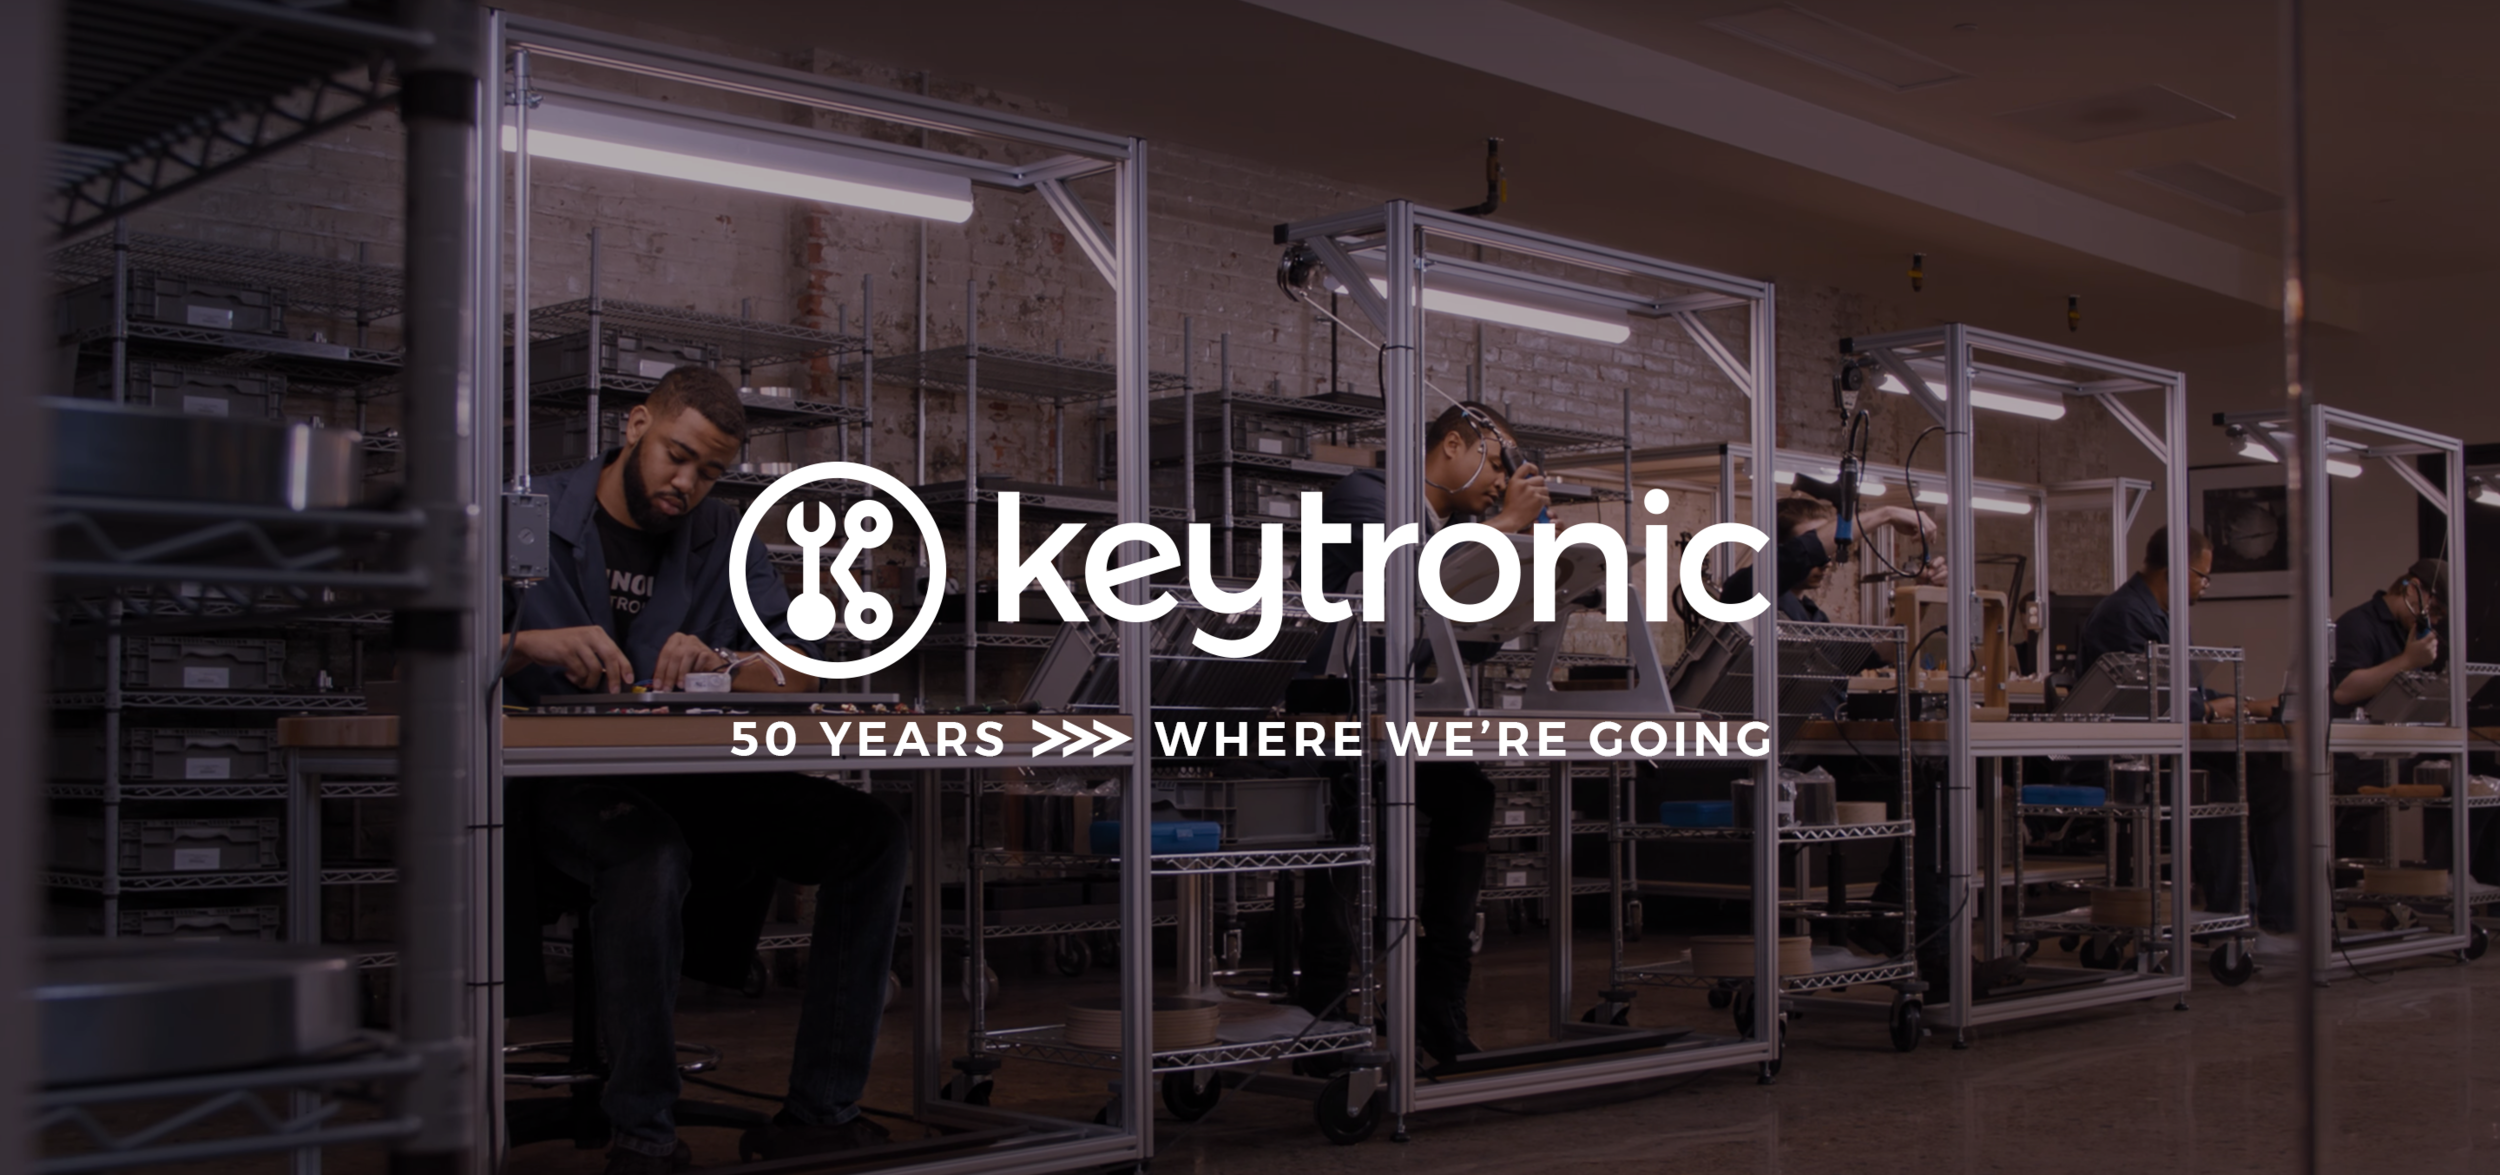 Keytronic_50Years-WhereWereGoing4.png